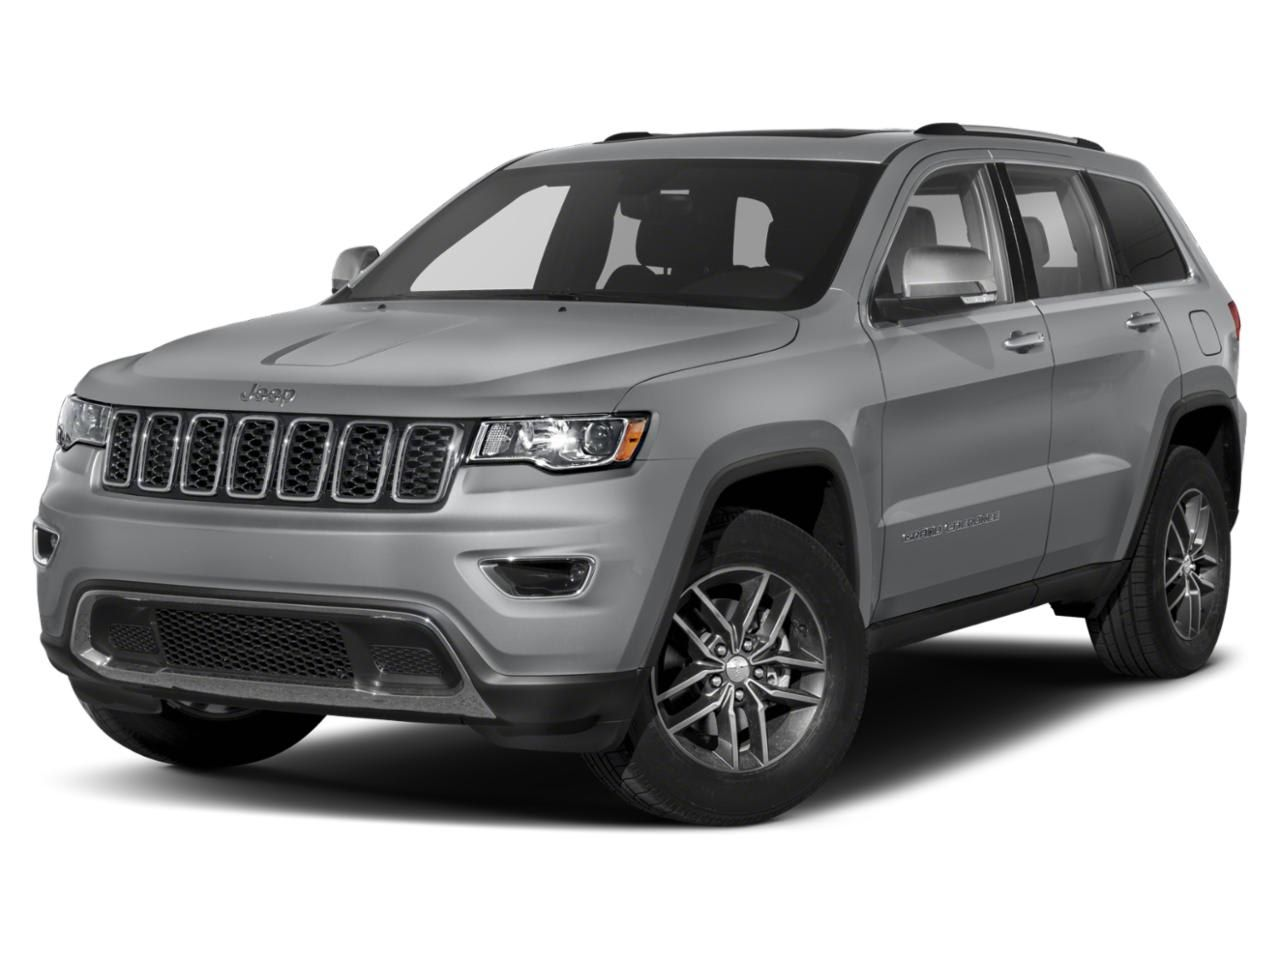 2020 Jeep Grand Cherokee Reviews Ratings Prices Consumer Reports Jeep Grand Cherokee Limited Grand Cherokee Limited 2017 Jeep Grand Cherokee